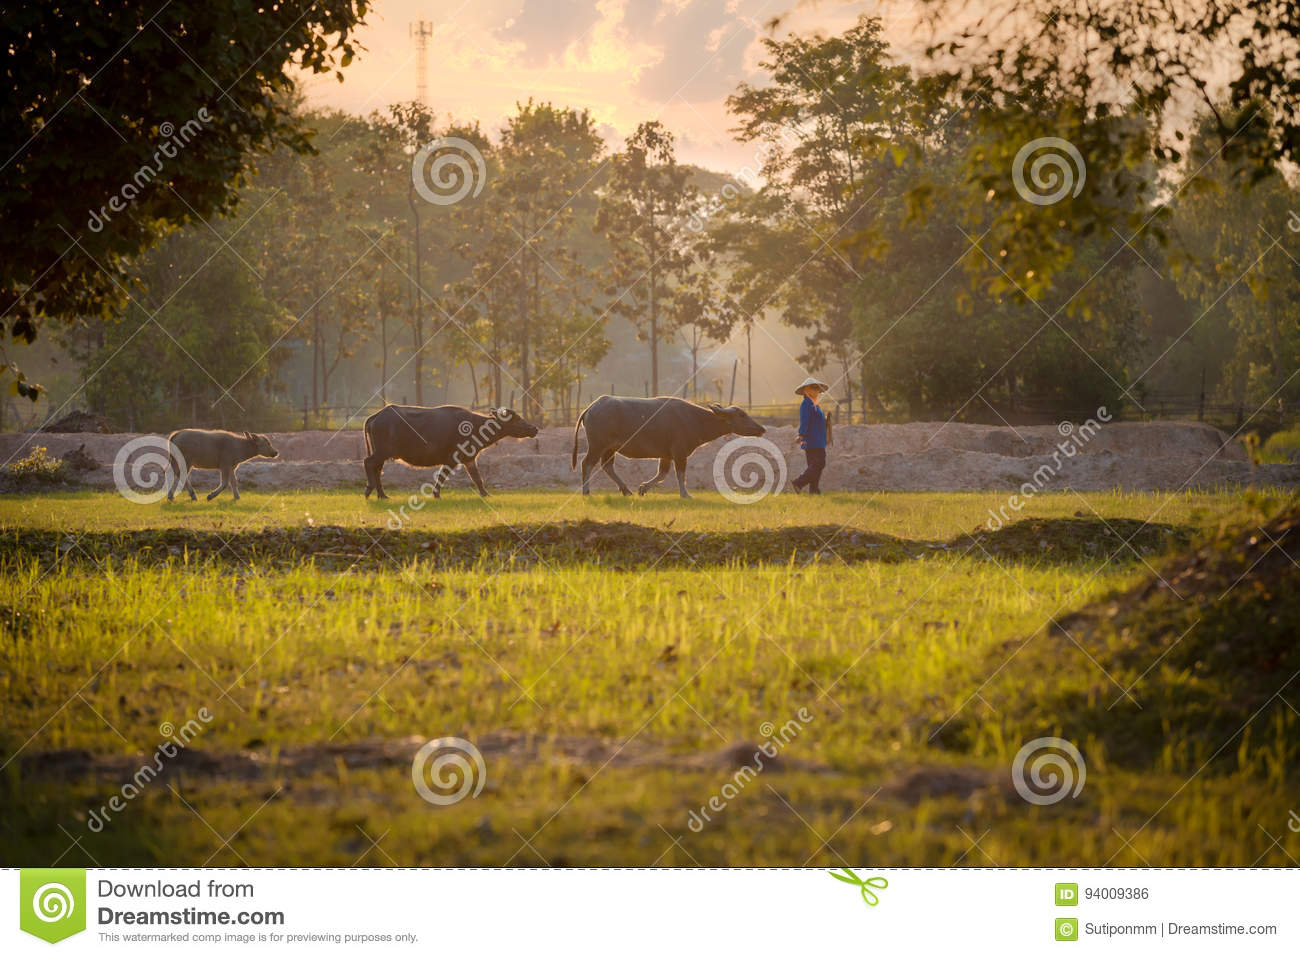 b556c43ae49 Asian Farmer and Buffalo are walking on the field come back to home.  Lifestyle it farmer in Southeast Asia Thailand Vietnam Laos Cambodia  Myanmar Indonesia ...